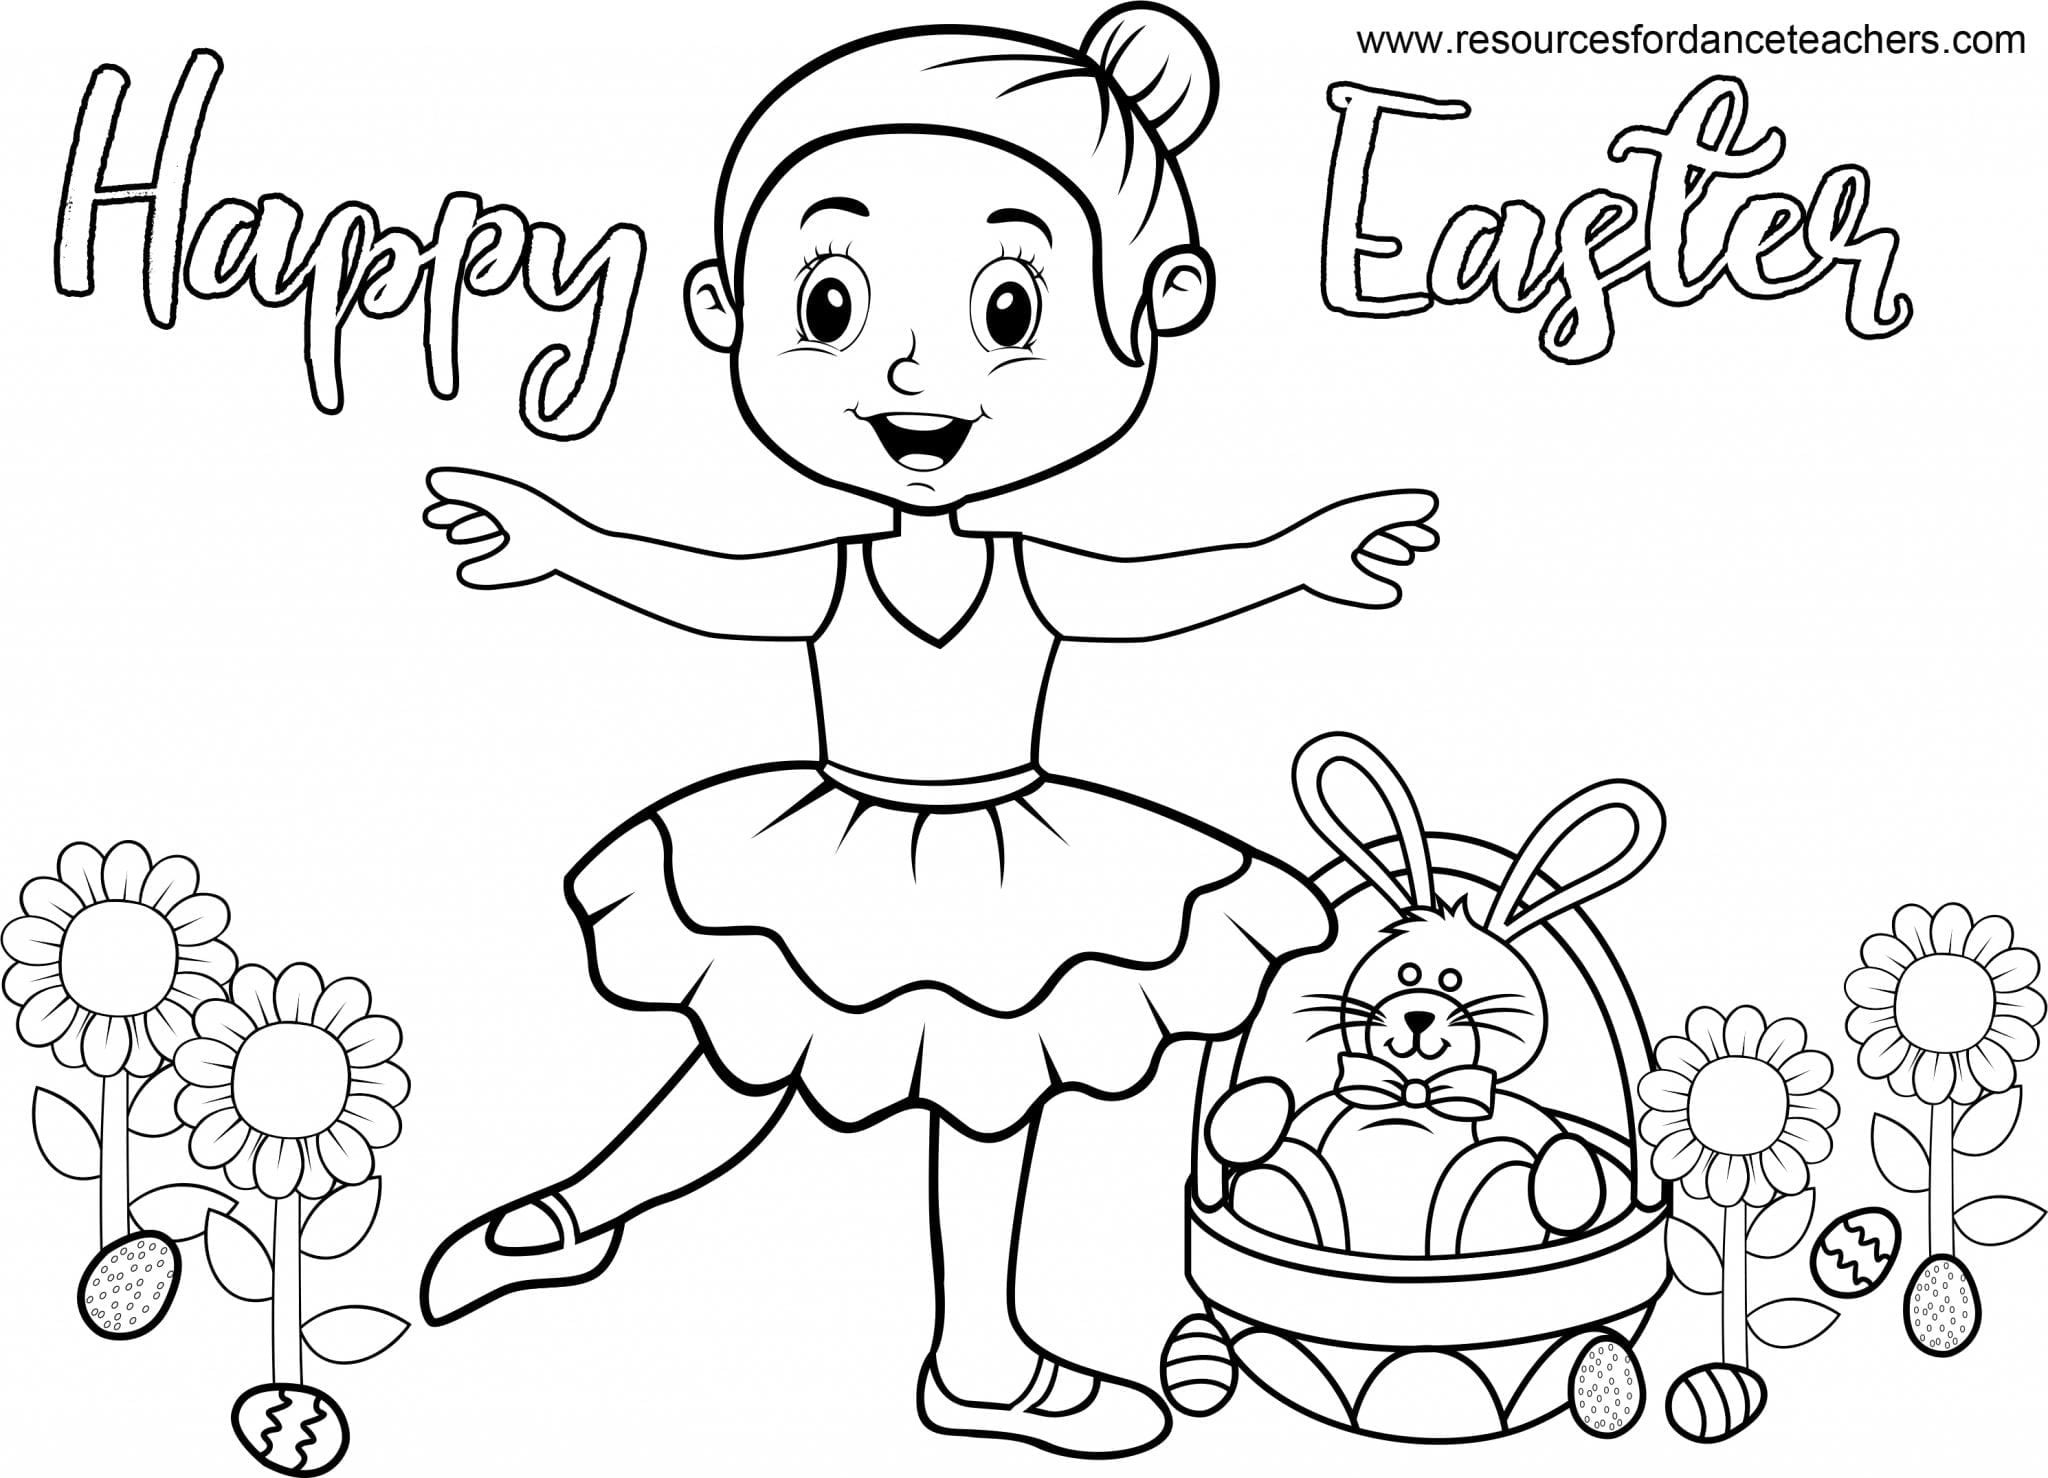 Top 5 Preschool Dance Easter songs and Coloring Sheet